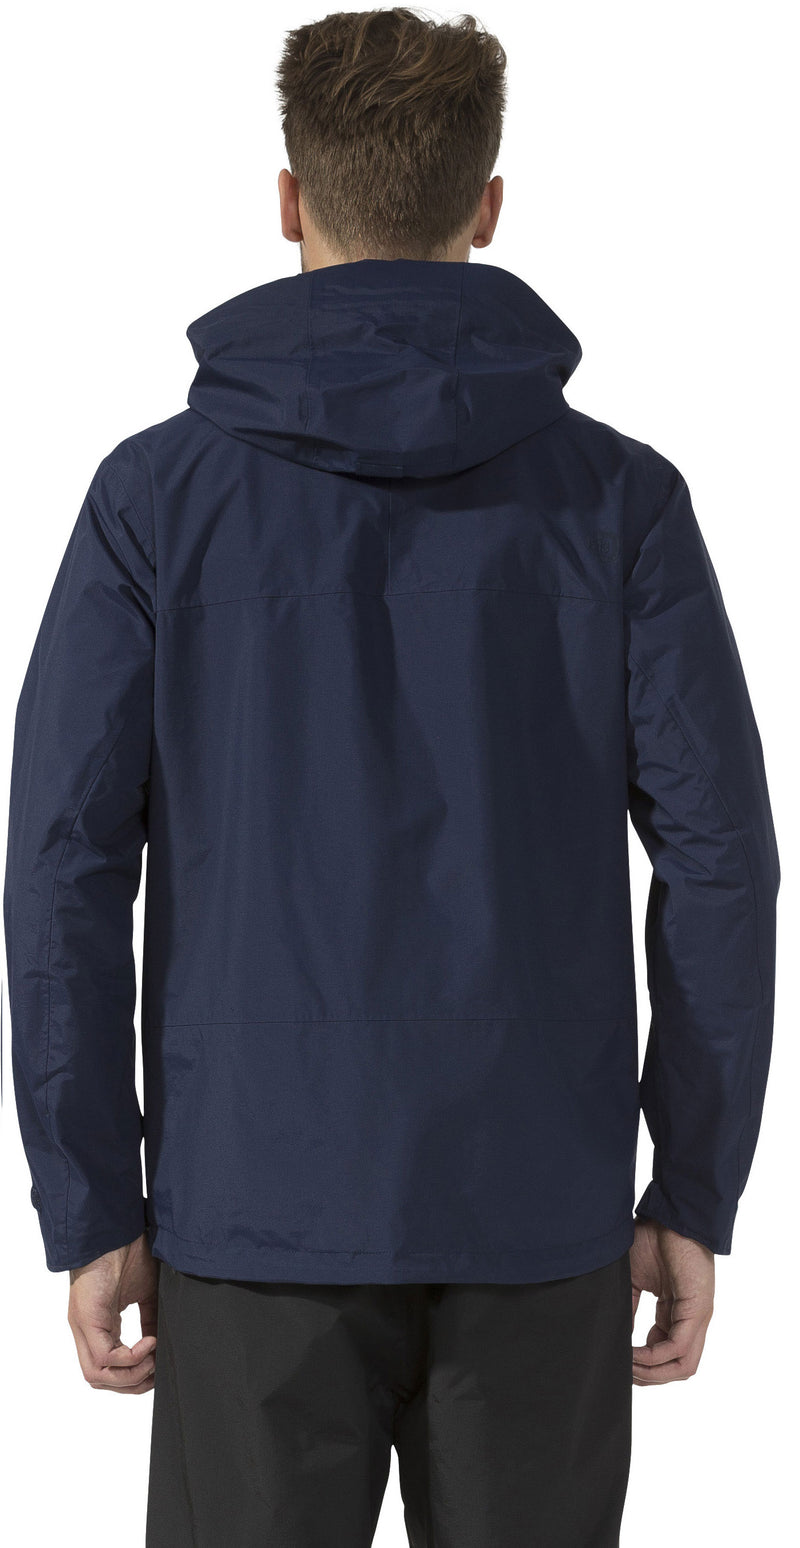 back view navy didrikson mens waterproof jacket lime green hooded